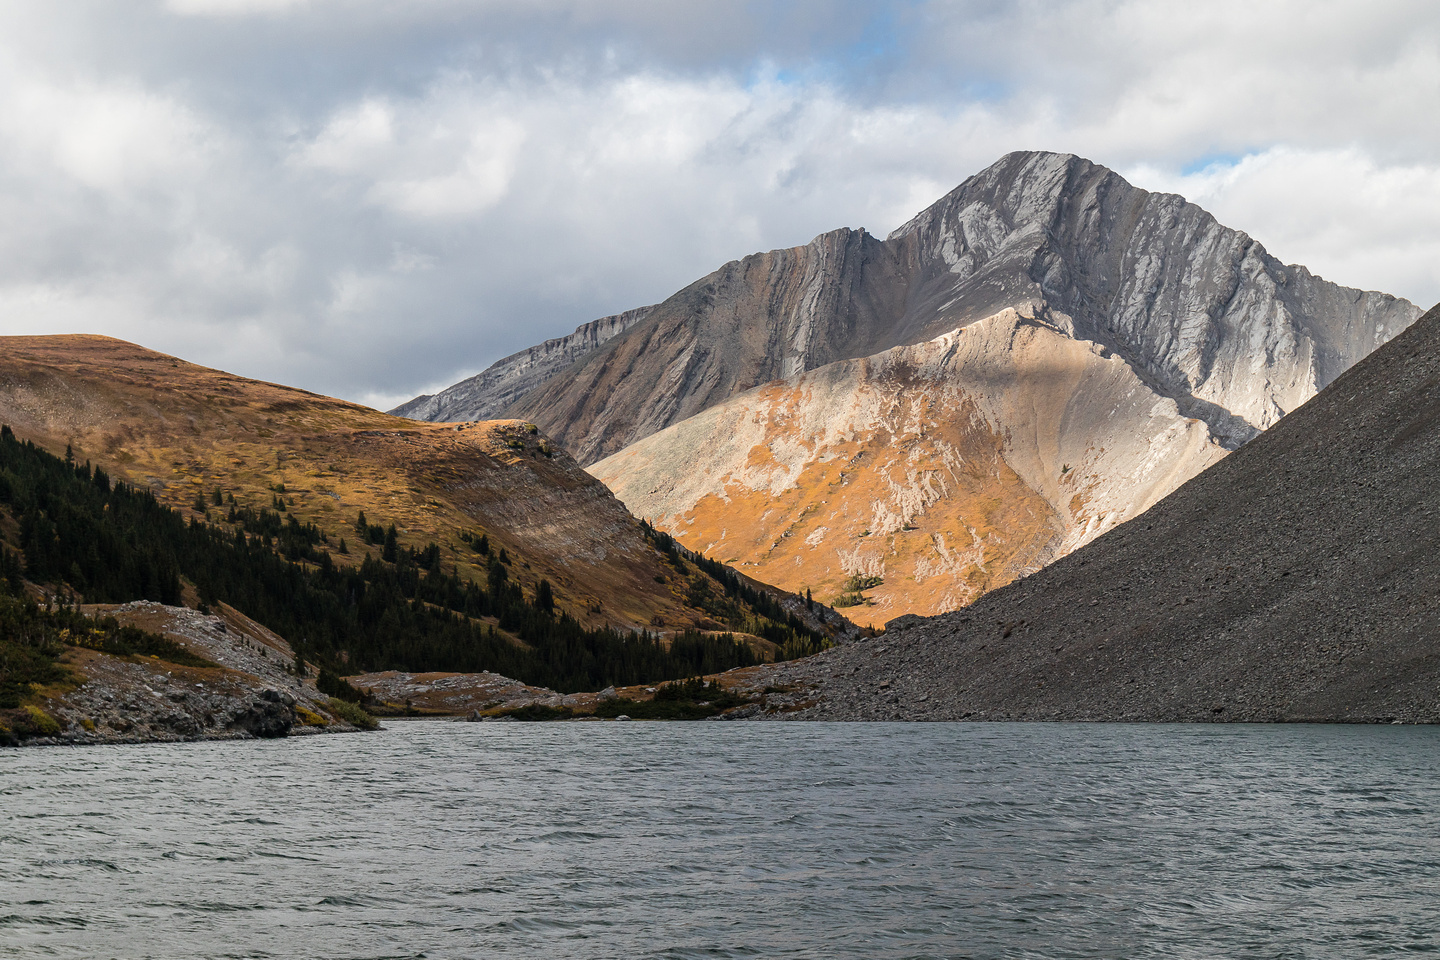 Carrot Peak looms over Stenton Lake.